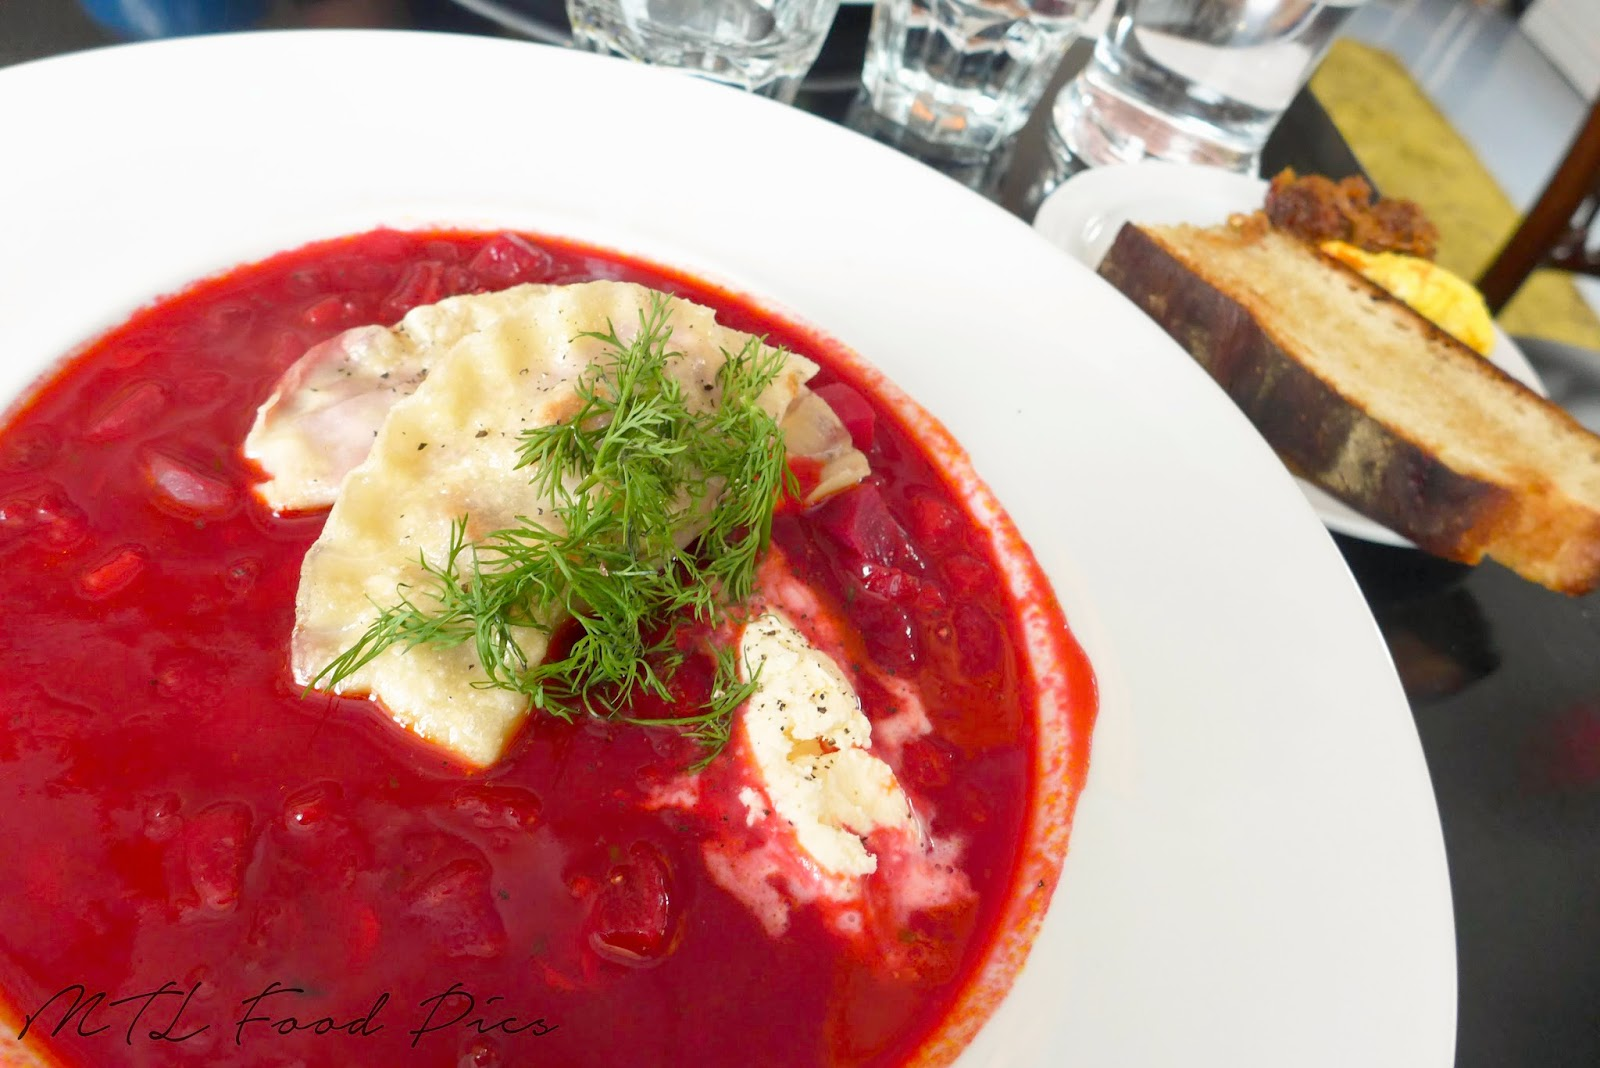 borscht beets pierogies - russian food Montreal